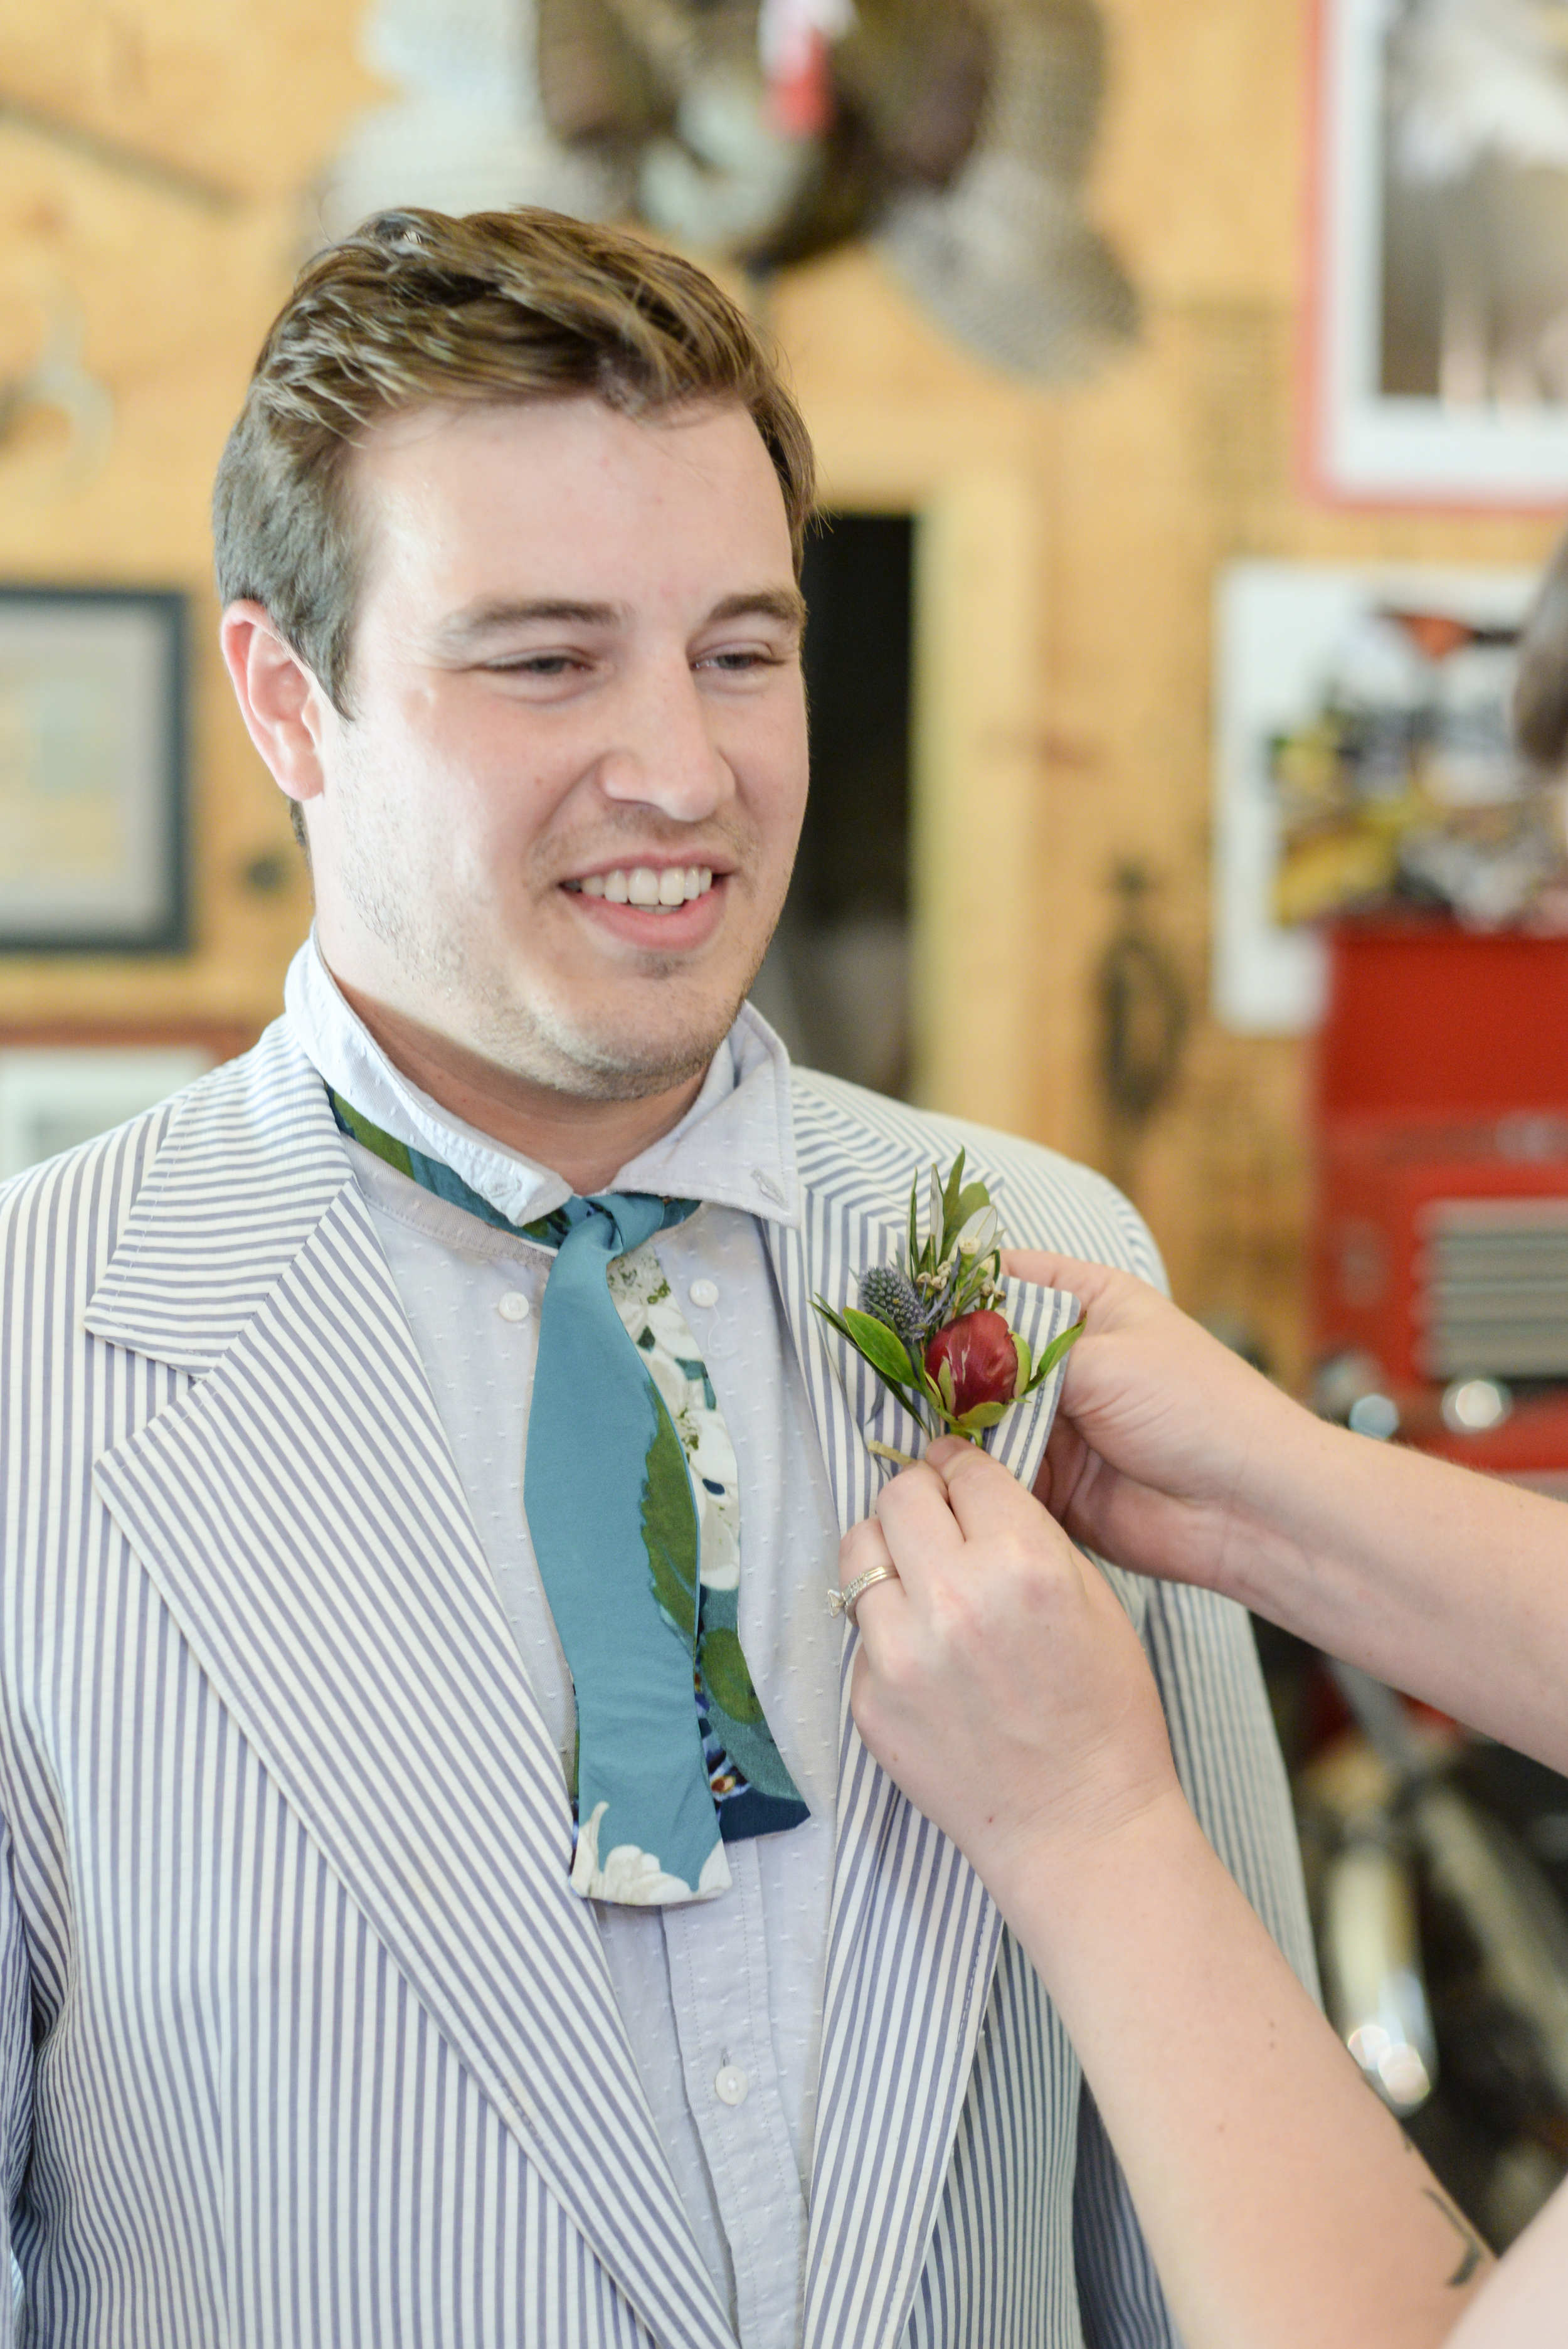 style altard st louis groom boutonnière pinning